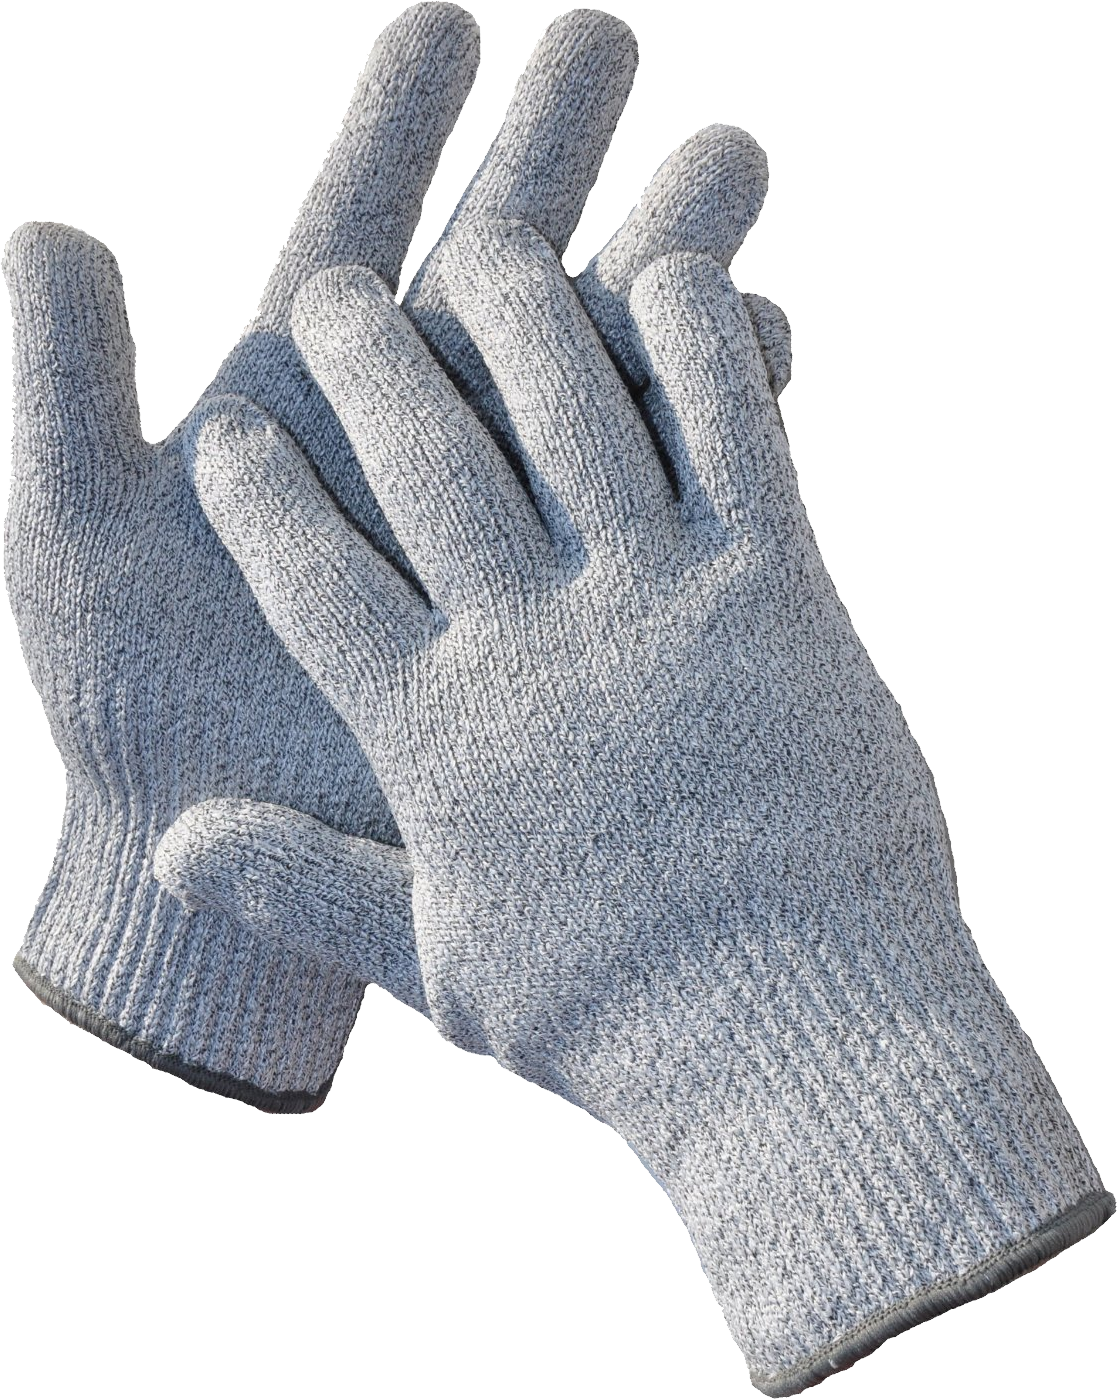 Gloves png images free. Mittens clipart woolen glove